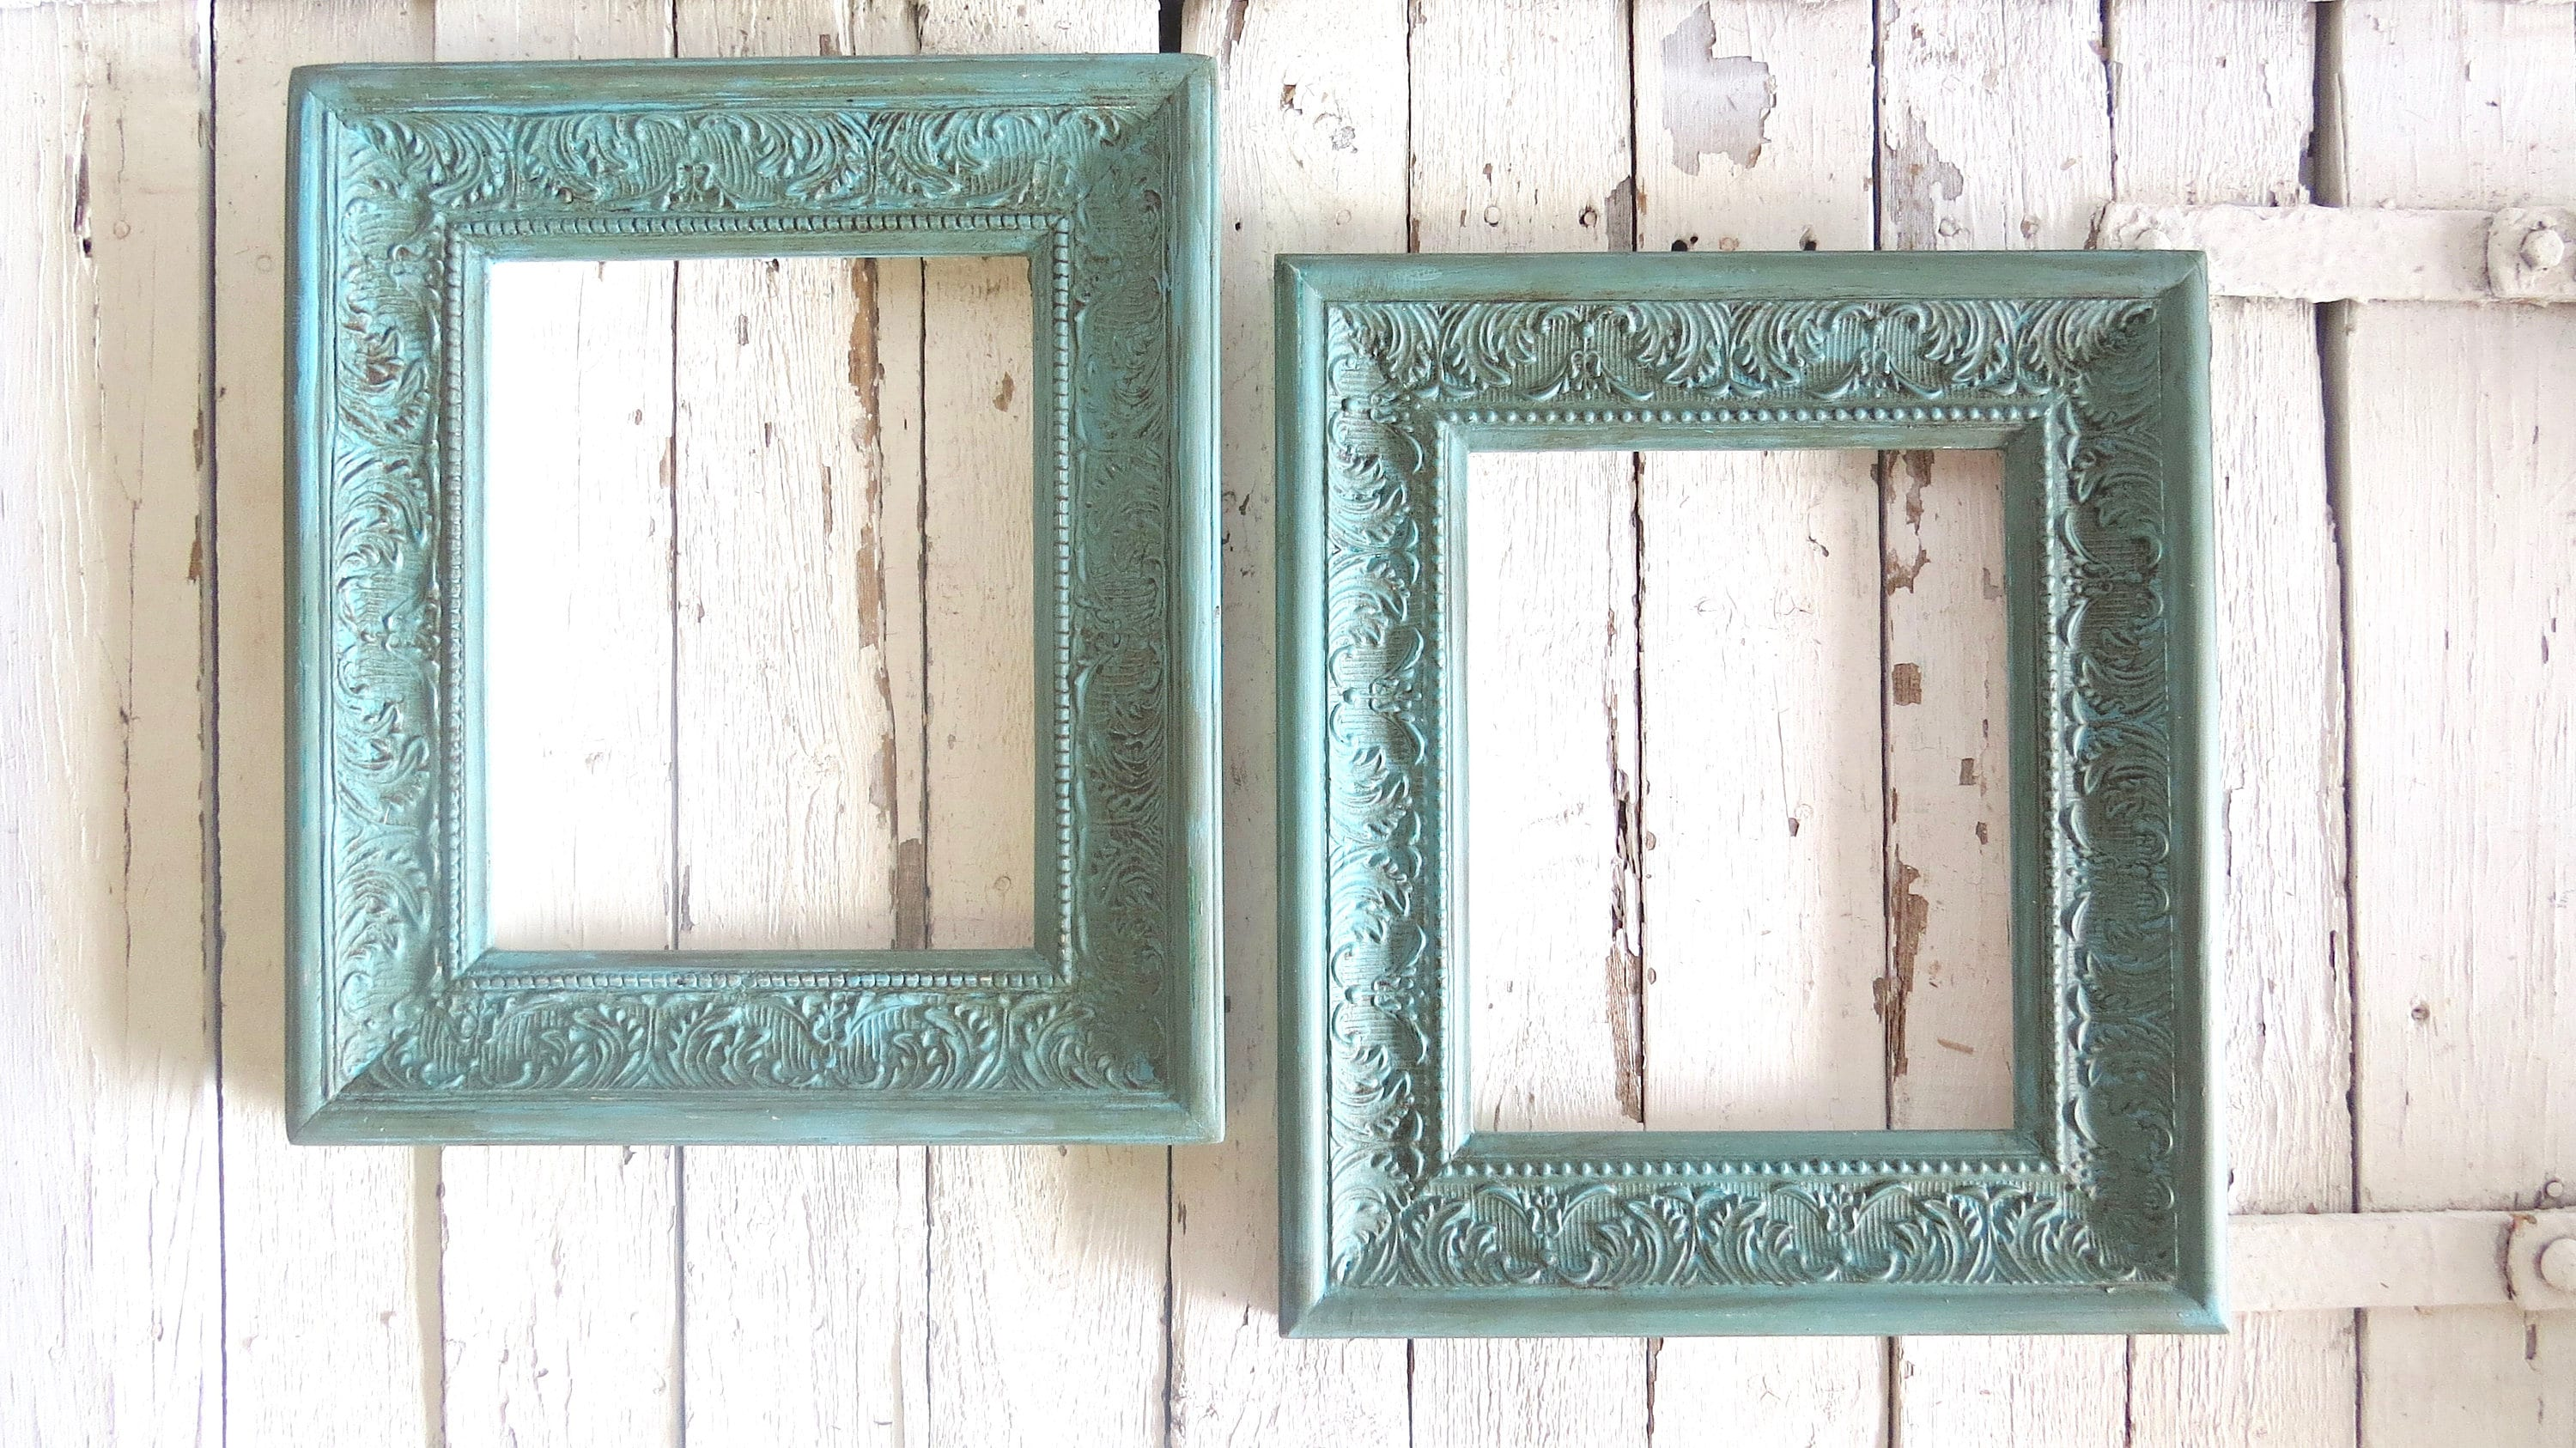 French Country Frames, Vintage Inspired Frames, Painted Aqua Frames ...